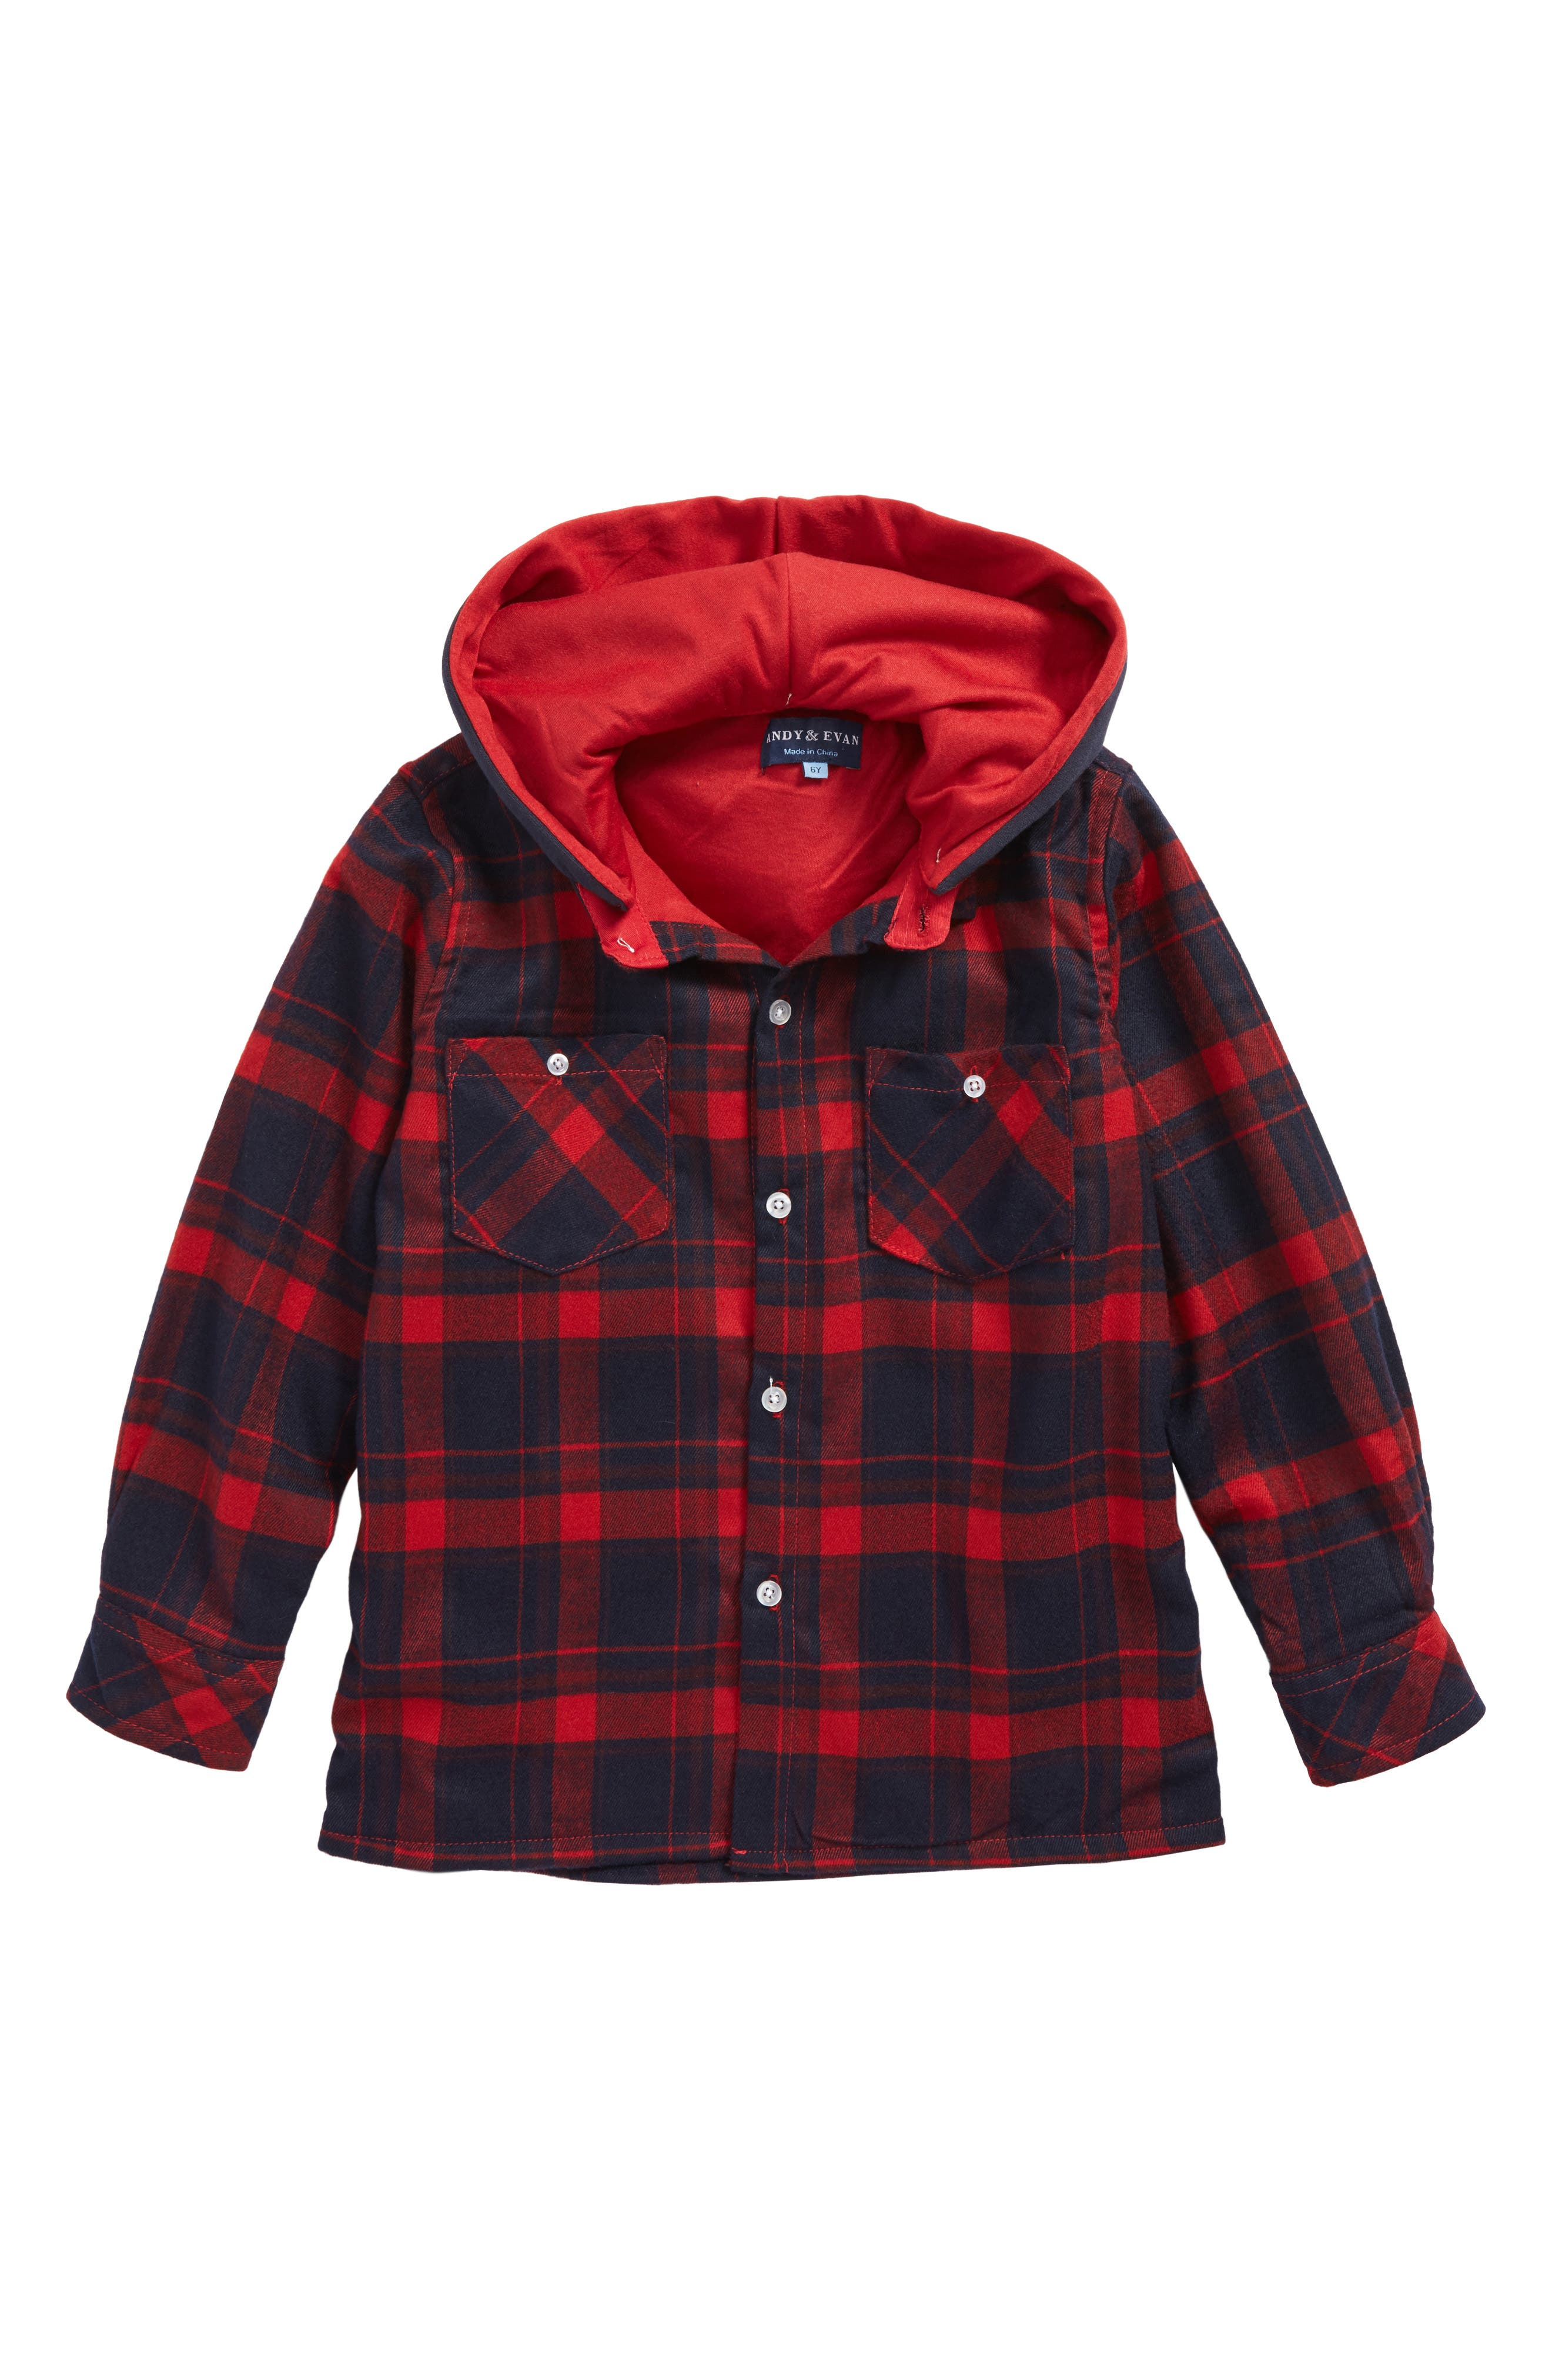 Andy & Even Hooded Flannel Shirt,                             Main thumbnail 1, color,